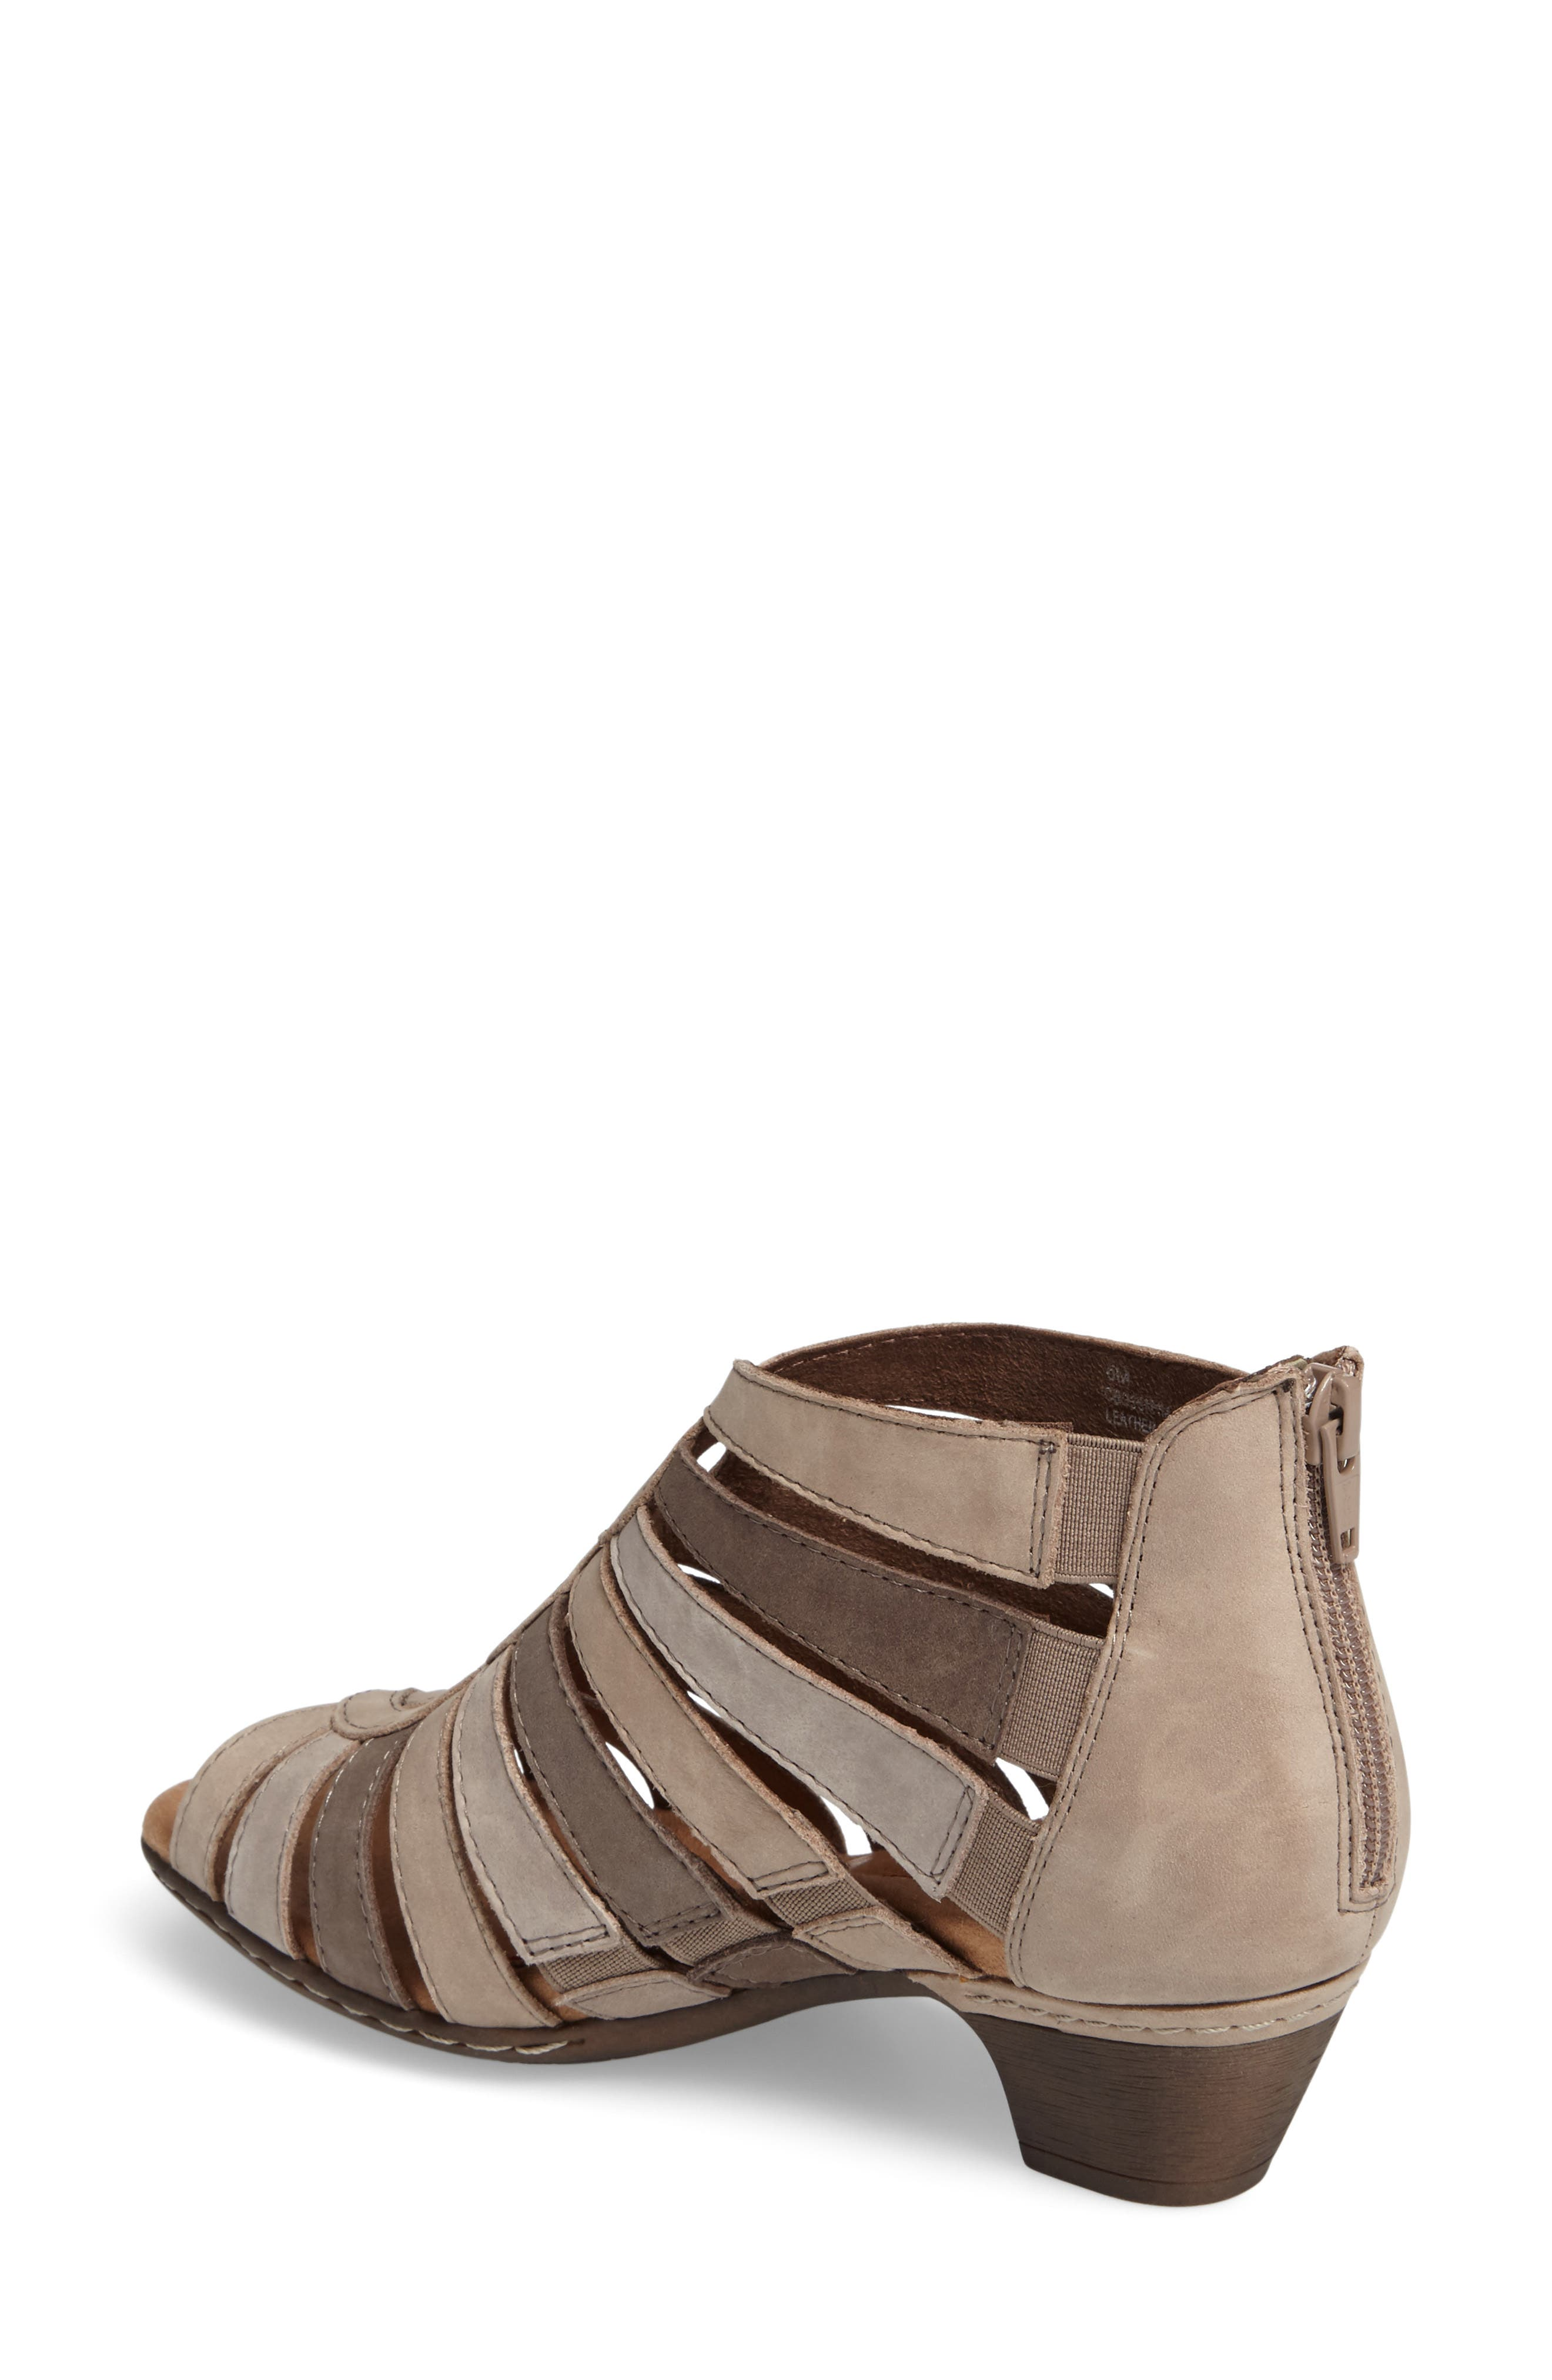 Abbott Caged Sandal,                             Alternate thumbnail 2, color,                             Light Khaki Multi Leather